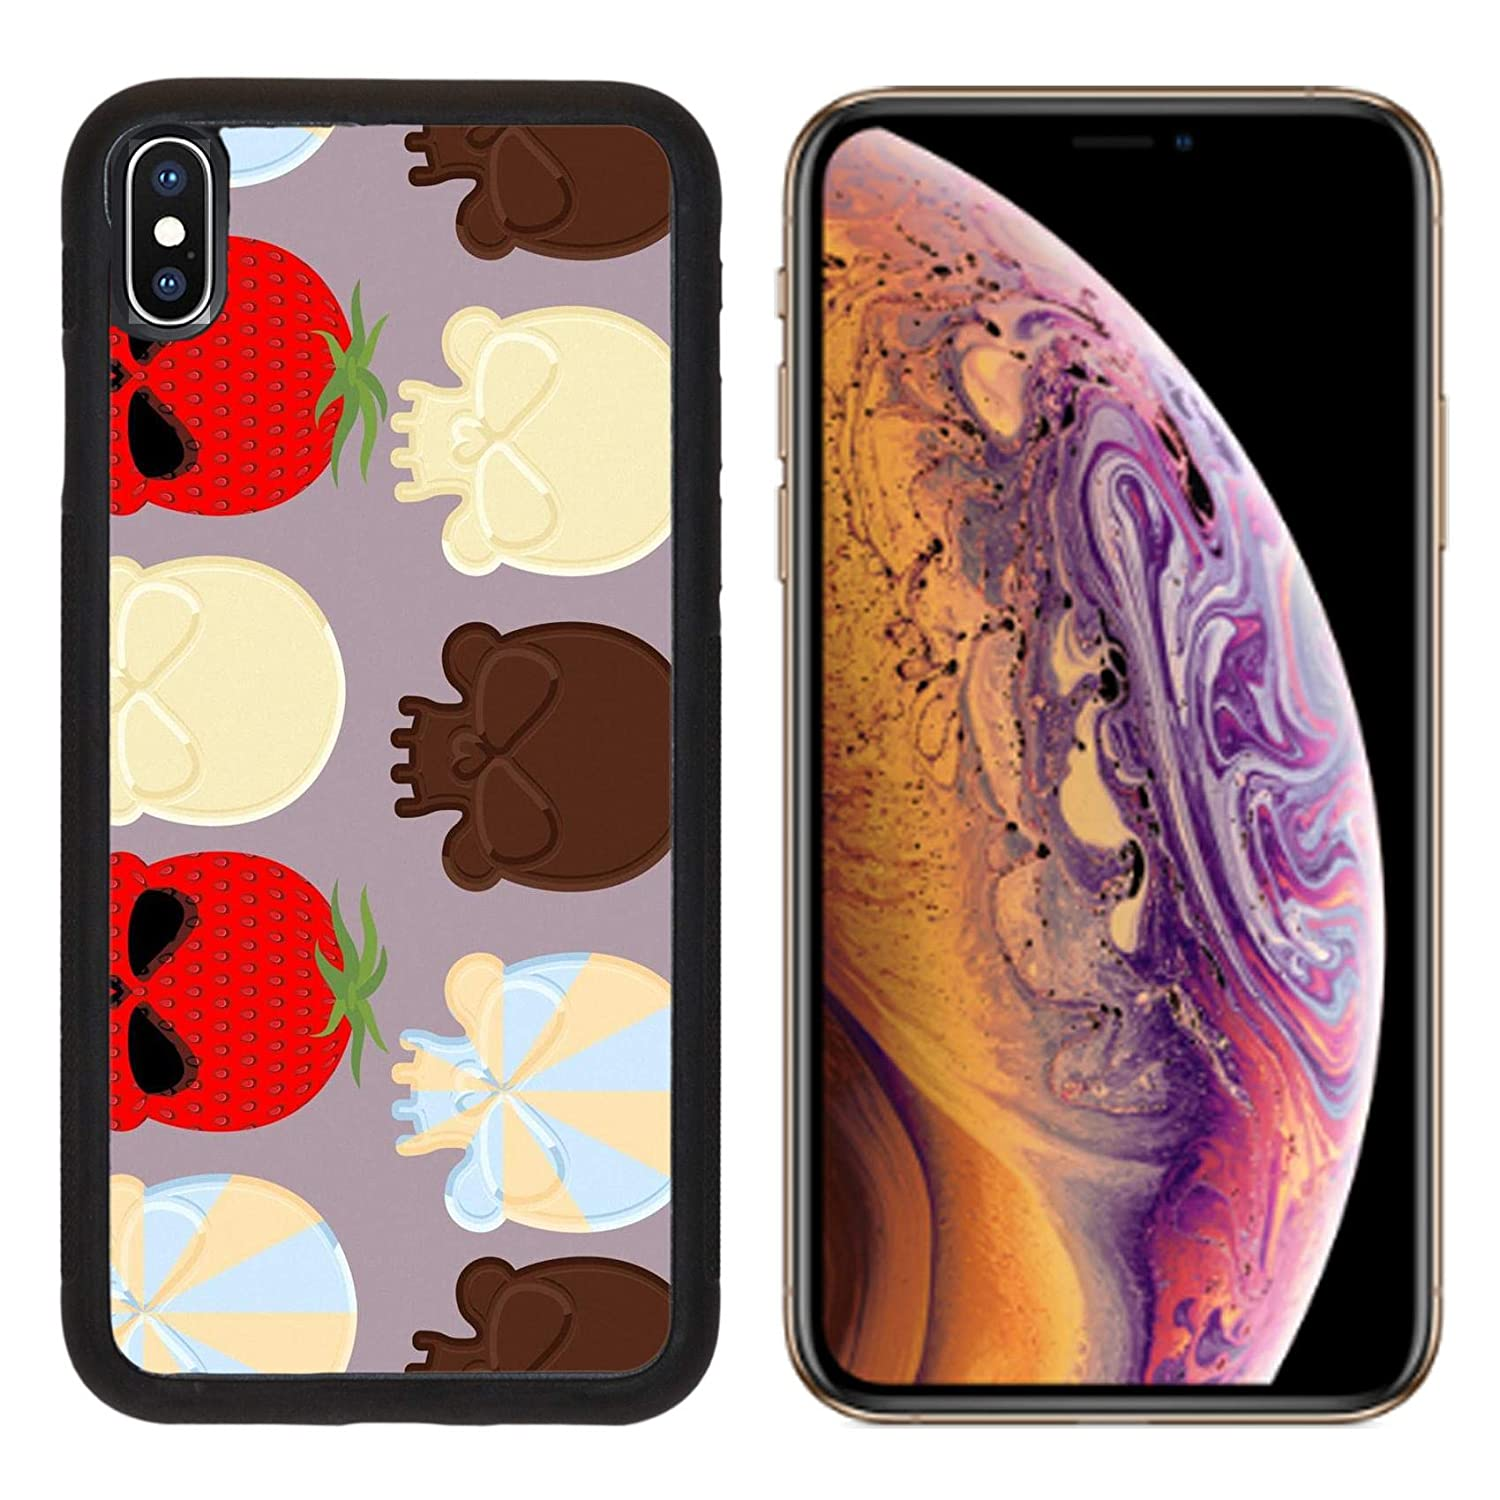 Luxlady Apple iPhone Xs Case Aluminum Backplate Bumper Snap Cases ID: 43128818 Sweet Candy Skulls Seamless Pattern Head Skeleton Made of Chocolate and strawb